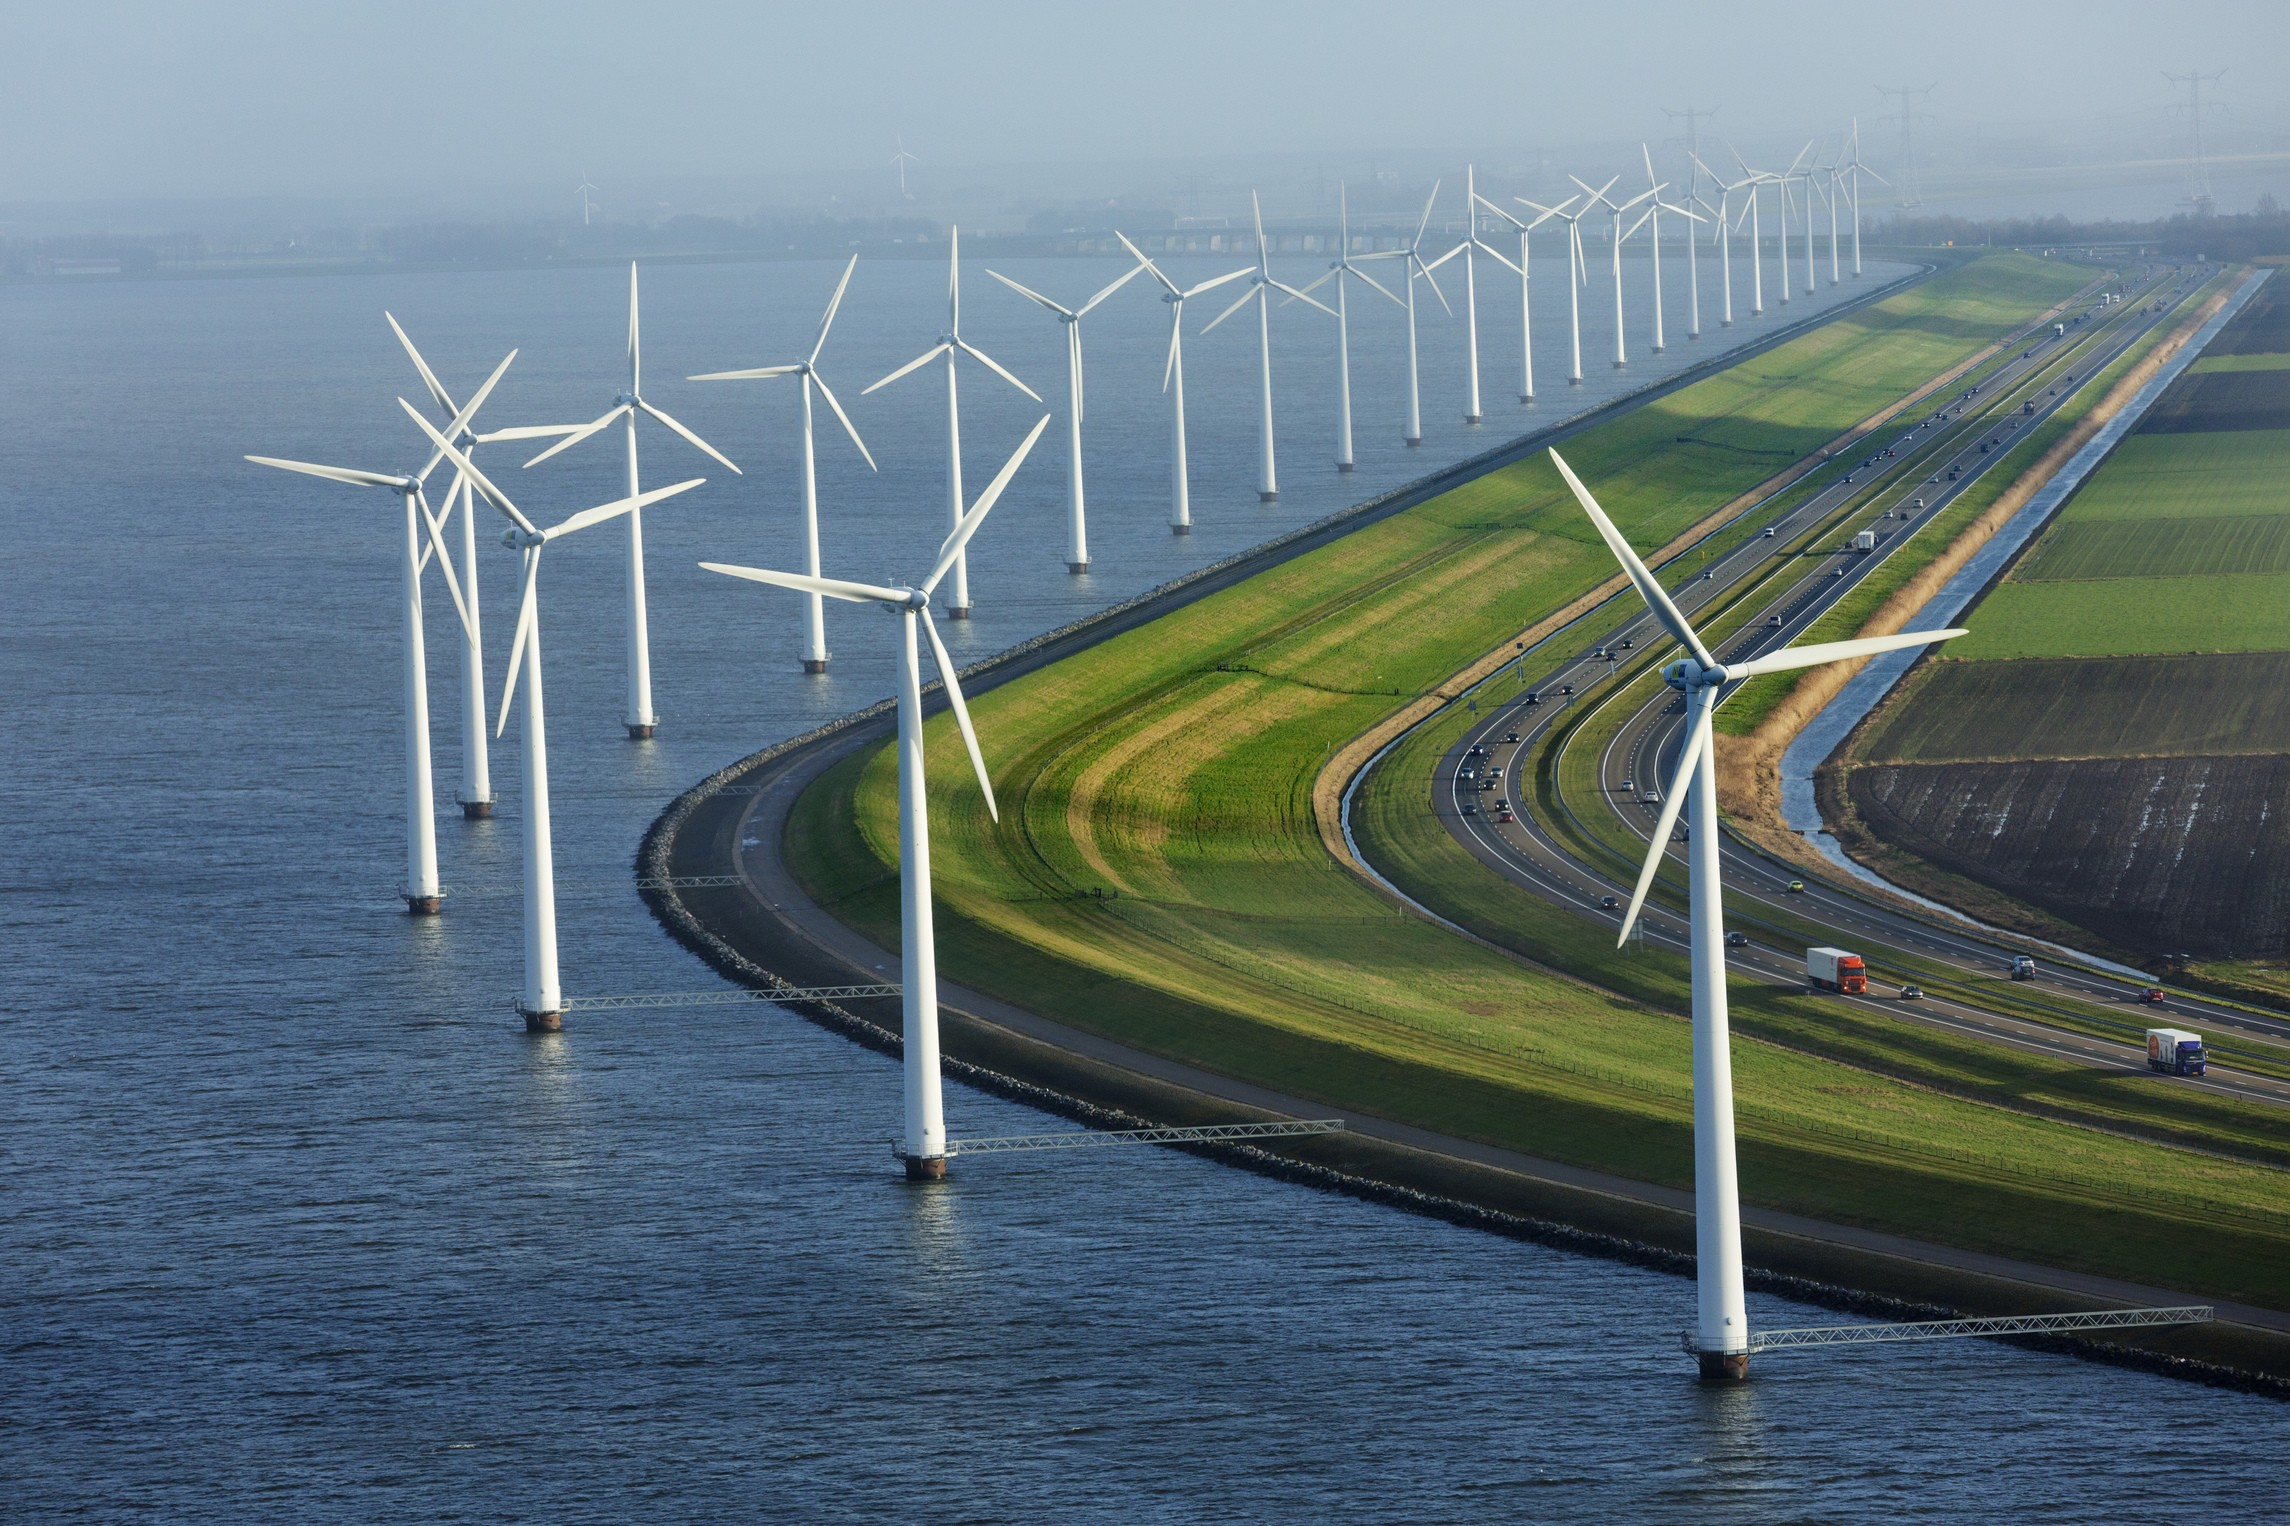 General 2290x1526 windmill Netherlands road sea car field wind farm highway coast